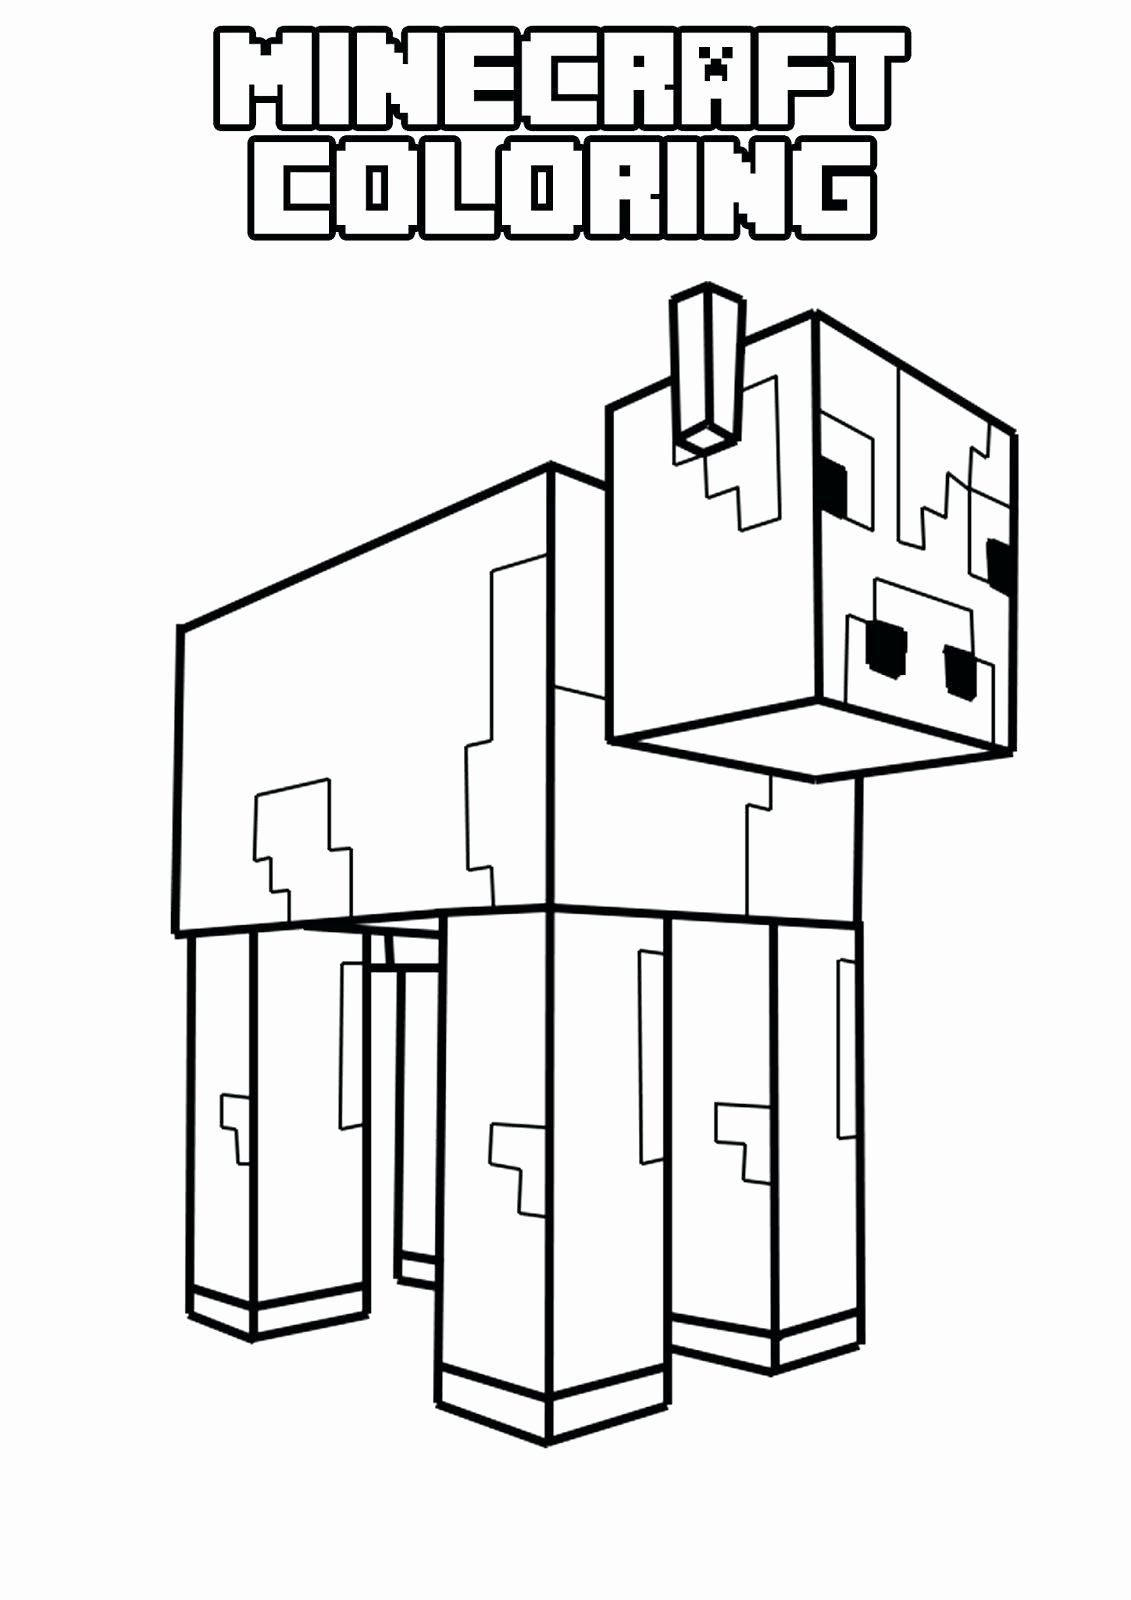 Number Coloring Minecraft Lovely Minecraft Coloring Pages Mutant Zombie Highendpaper Minecraft Coloring Pages Minecraft Printables Cow Coloring Pages